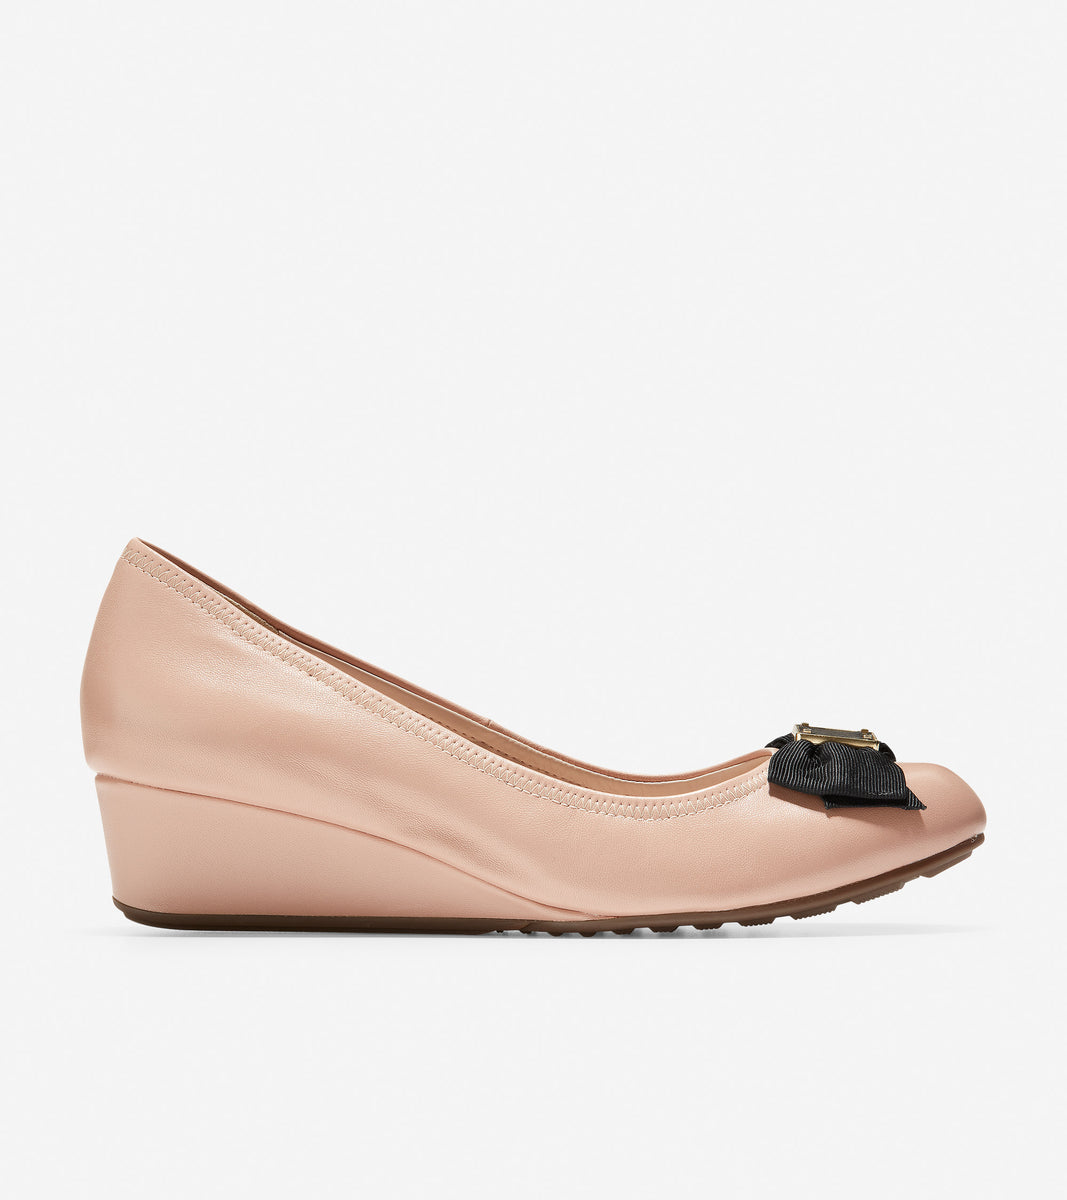 Tali Soft Bow Wedge